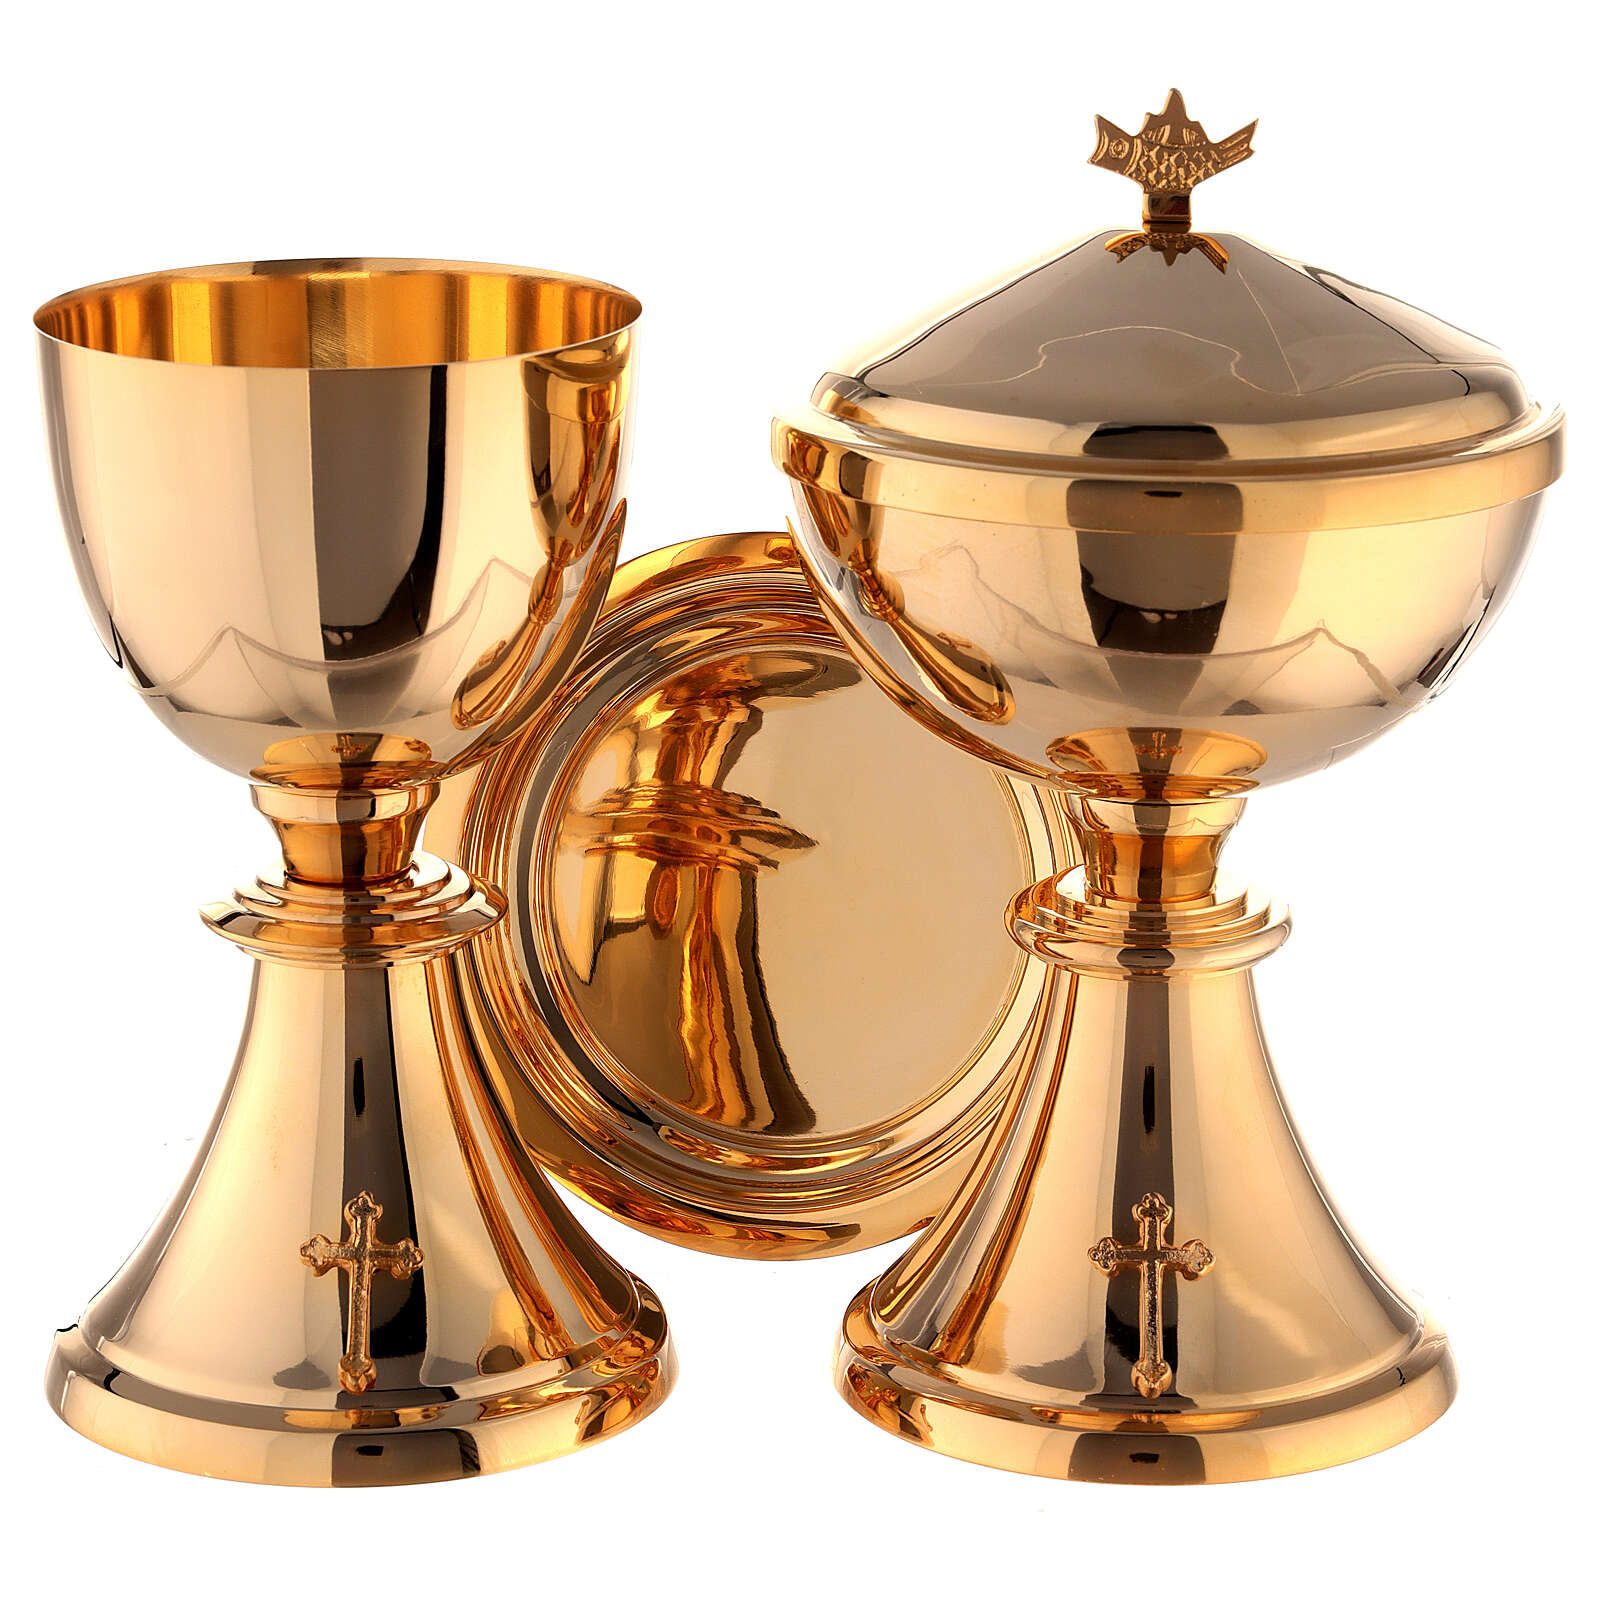 Chalice, ciborium and paten attached cross gold plated brass 4